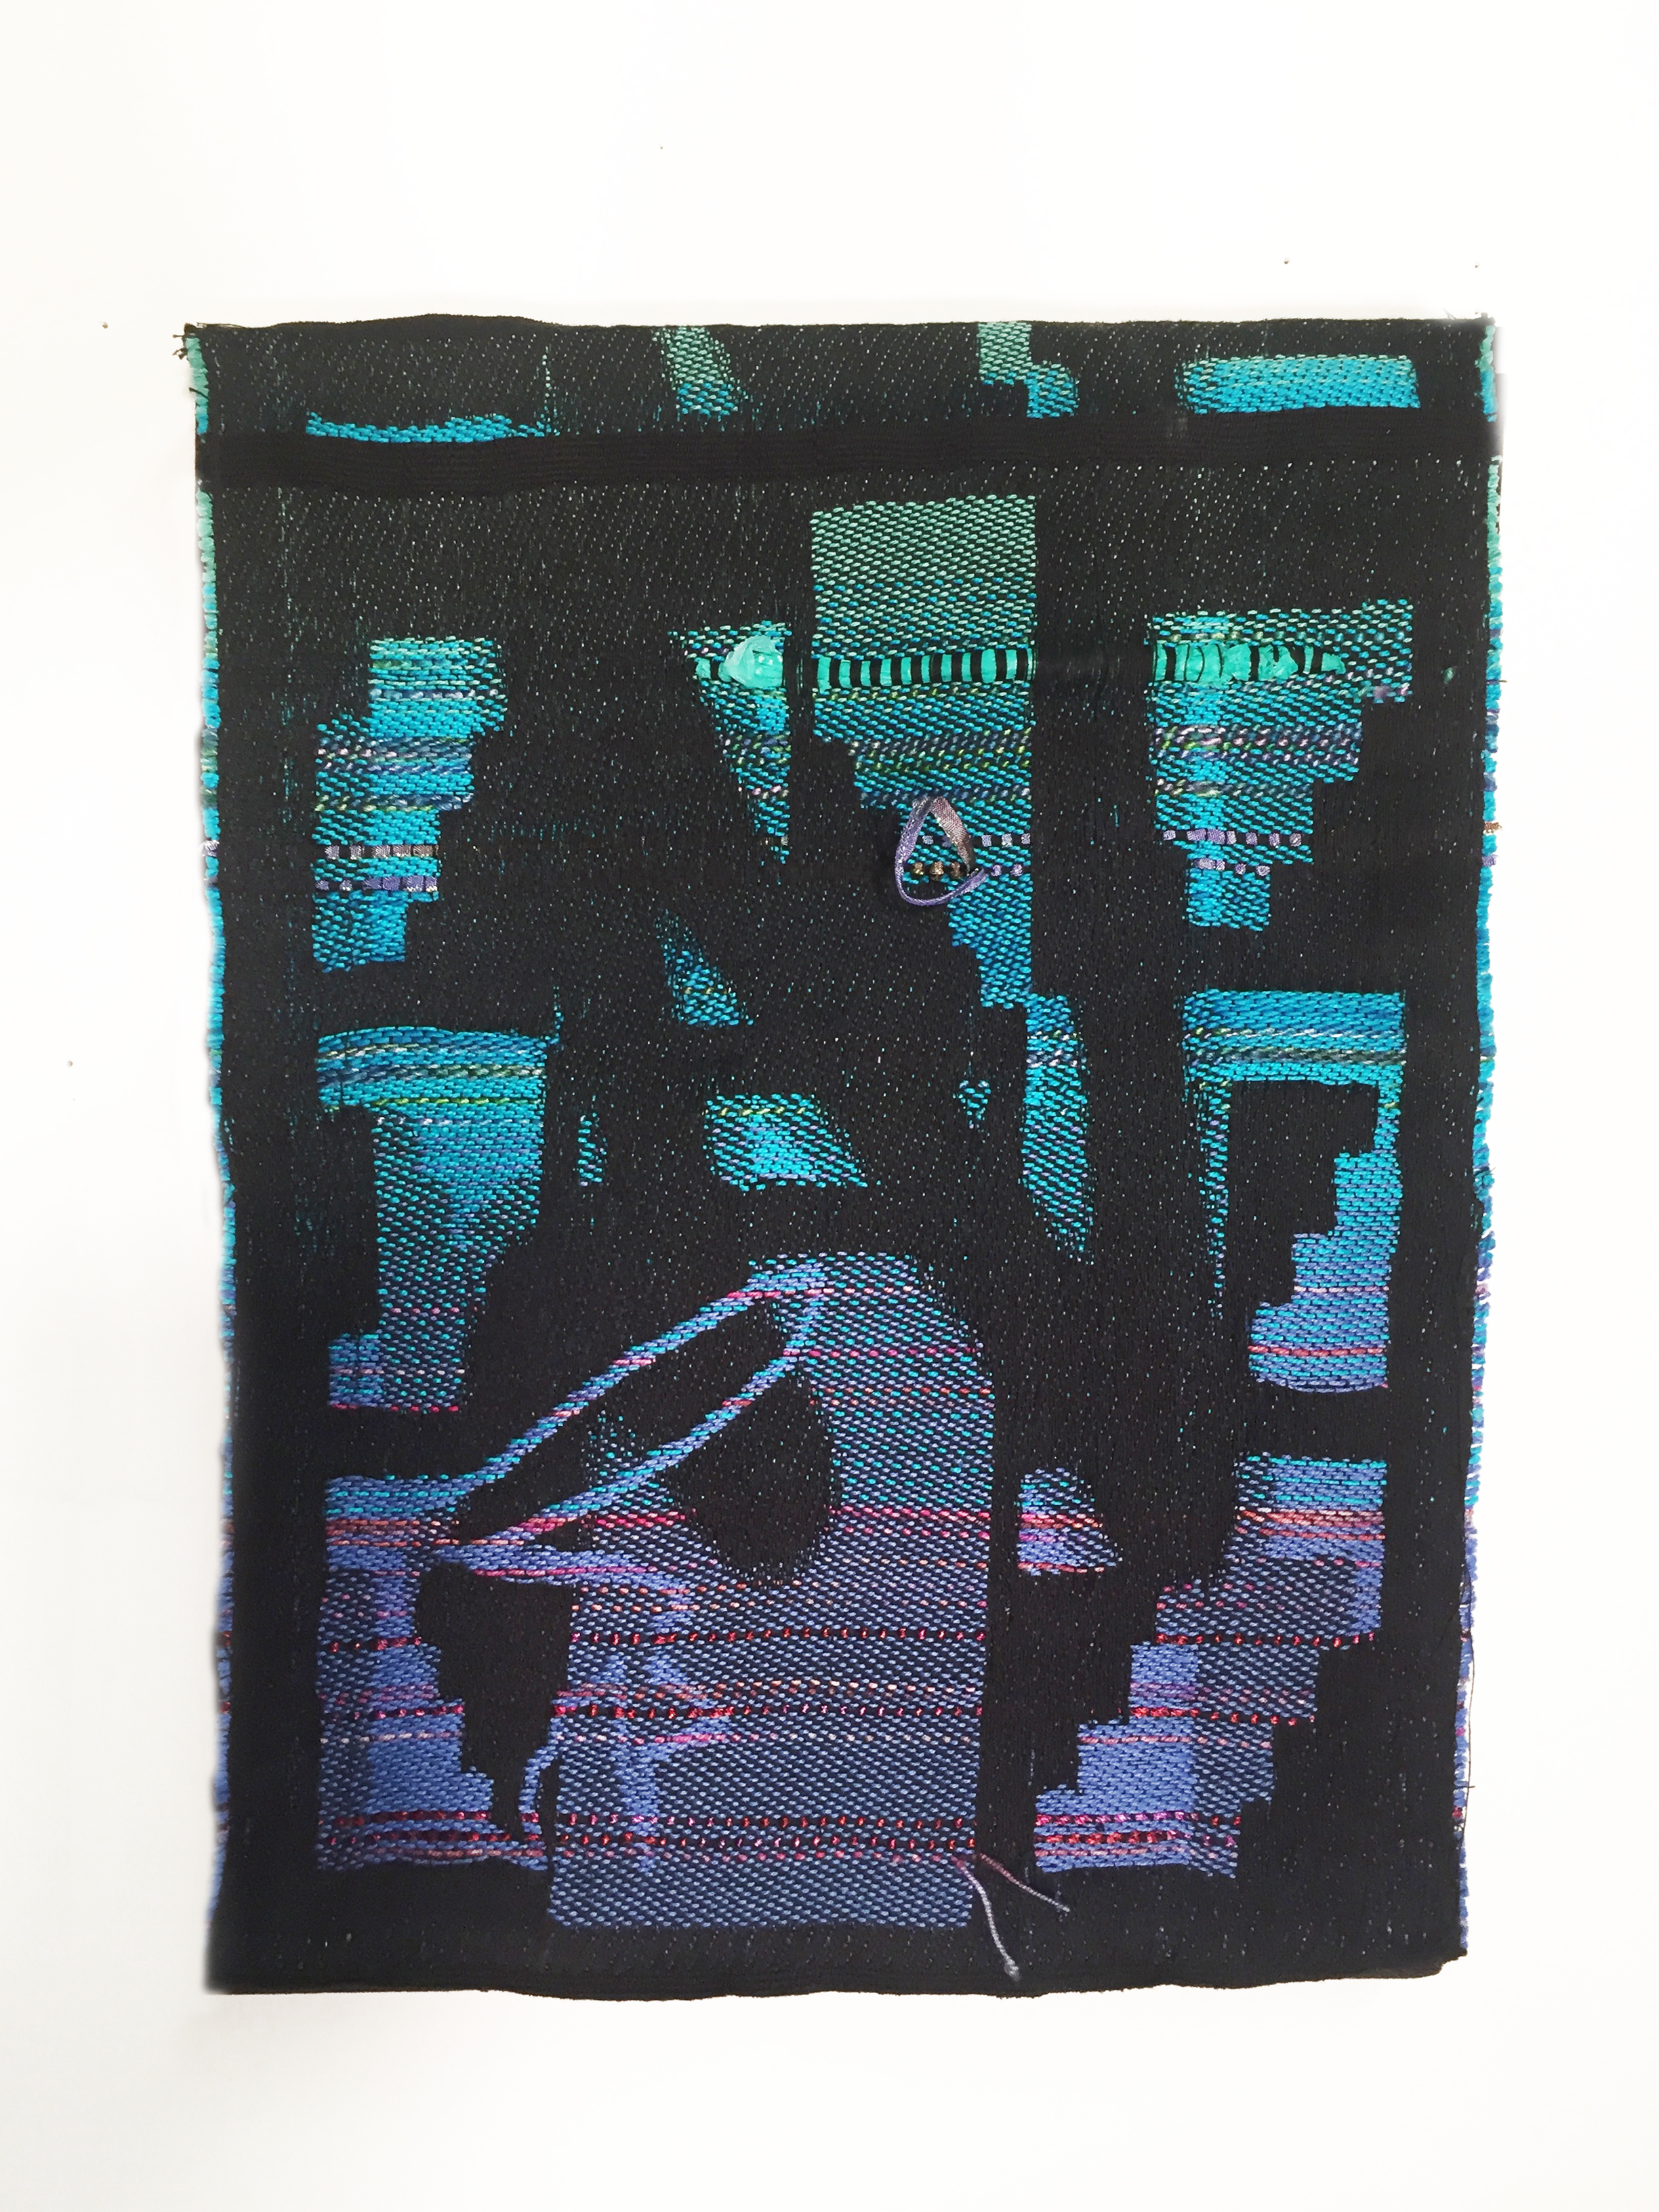 "Robin Kang, Pliable Plane, Hand Jacquard woven cotton, hand dyed wool, and synthetic fibers 12 x 16"", 2016"